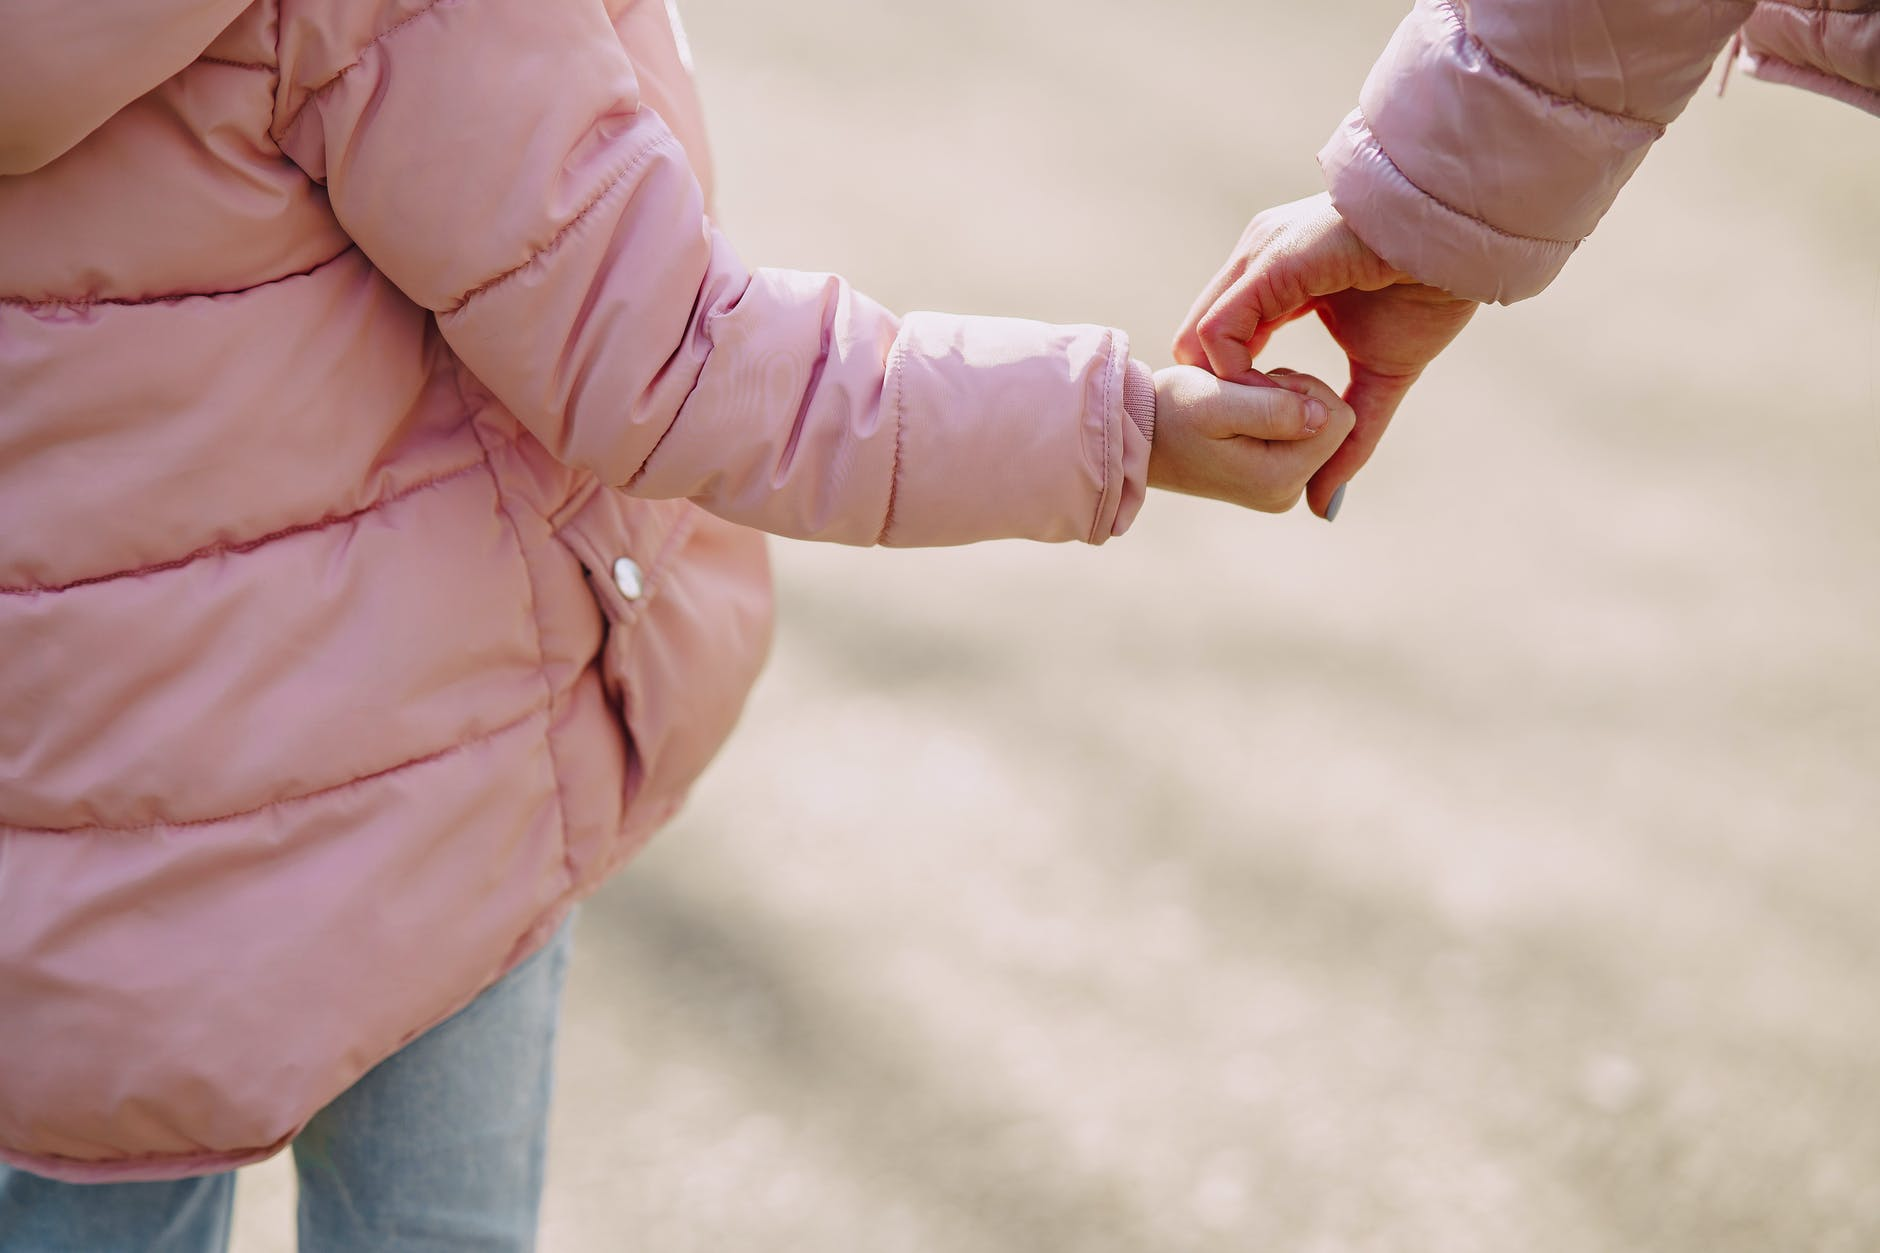 Absence Of Parent Does Not Itself Make An Adoption Process Procedurally Irregular: Courts Refuse Mothers Application of Adoption Order.